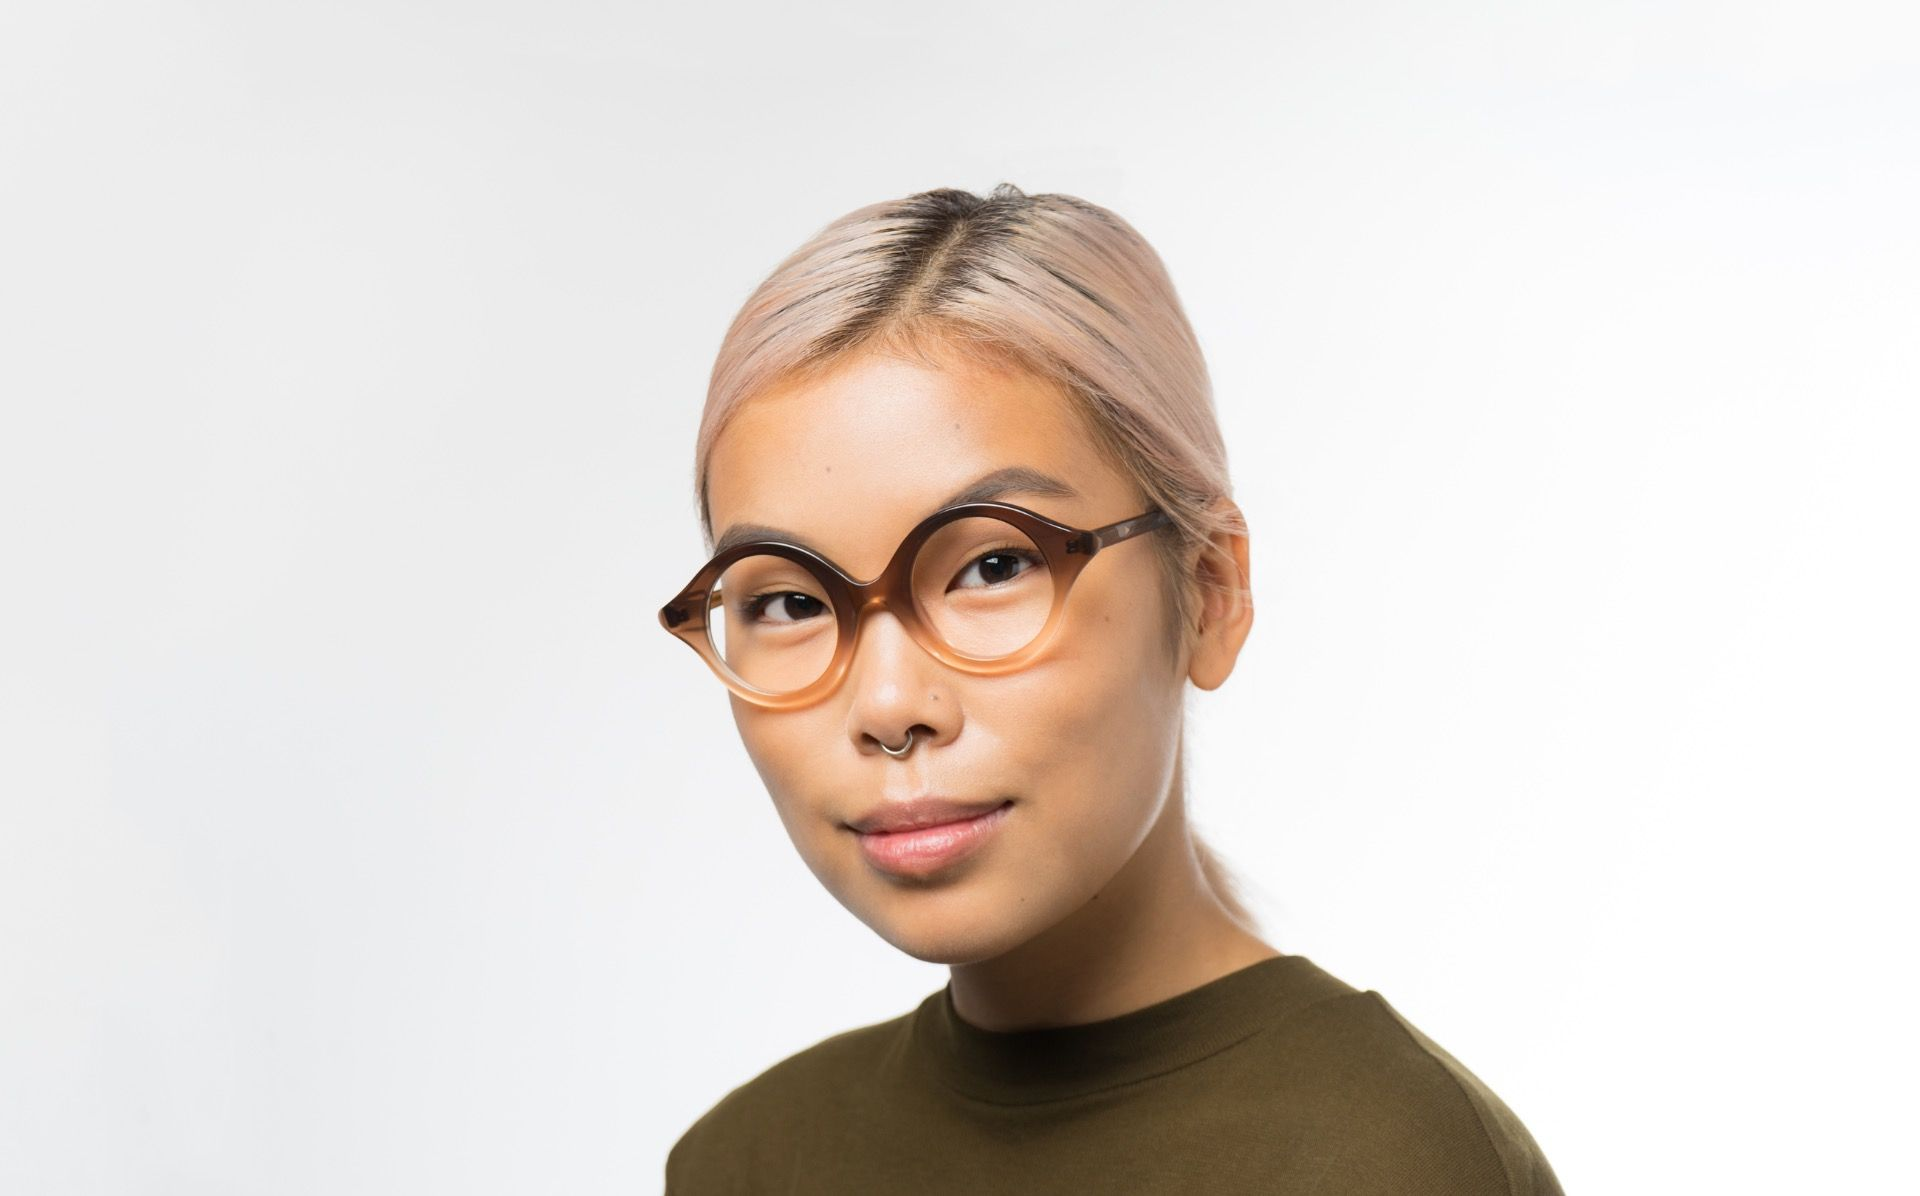 kiko polette glasses model view 01 crop